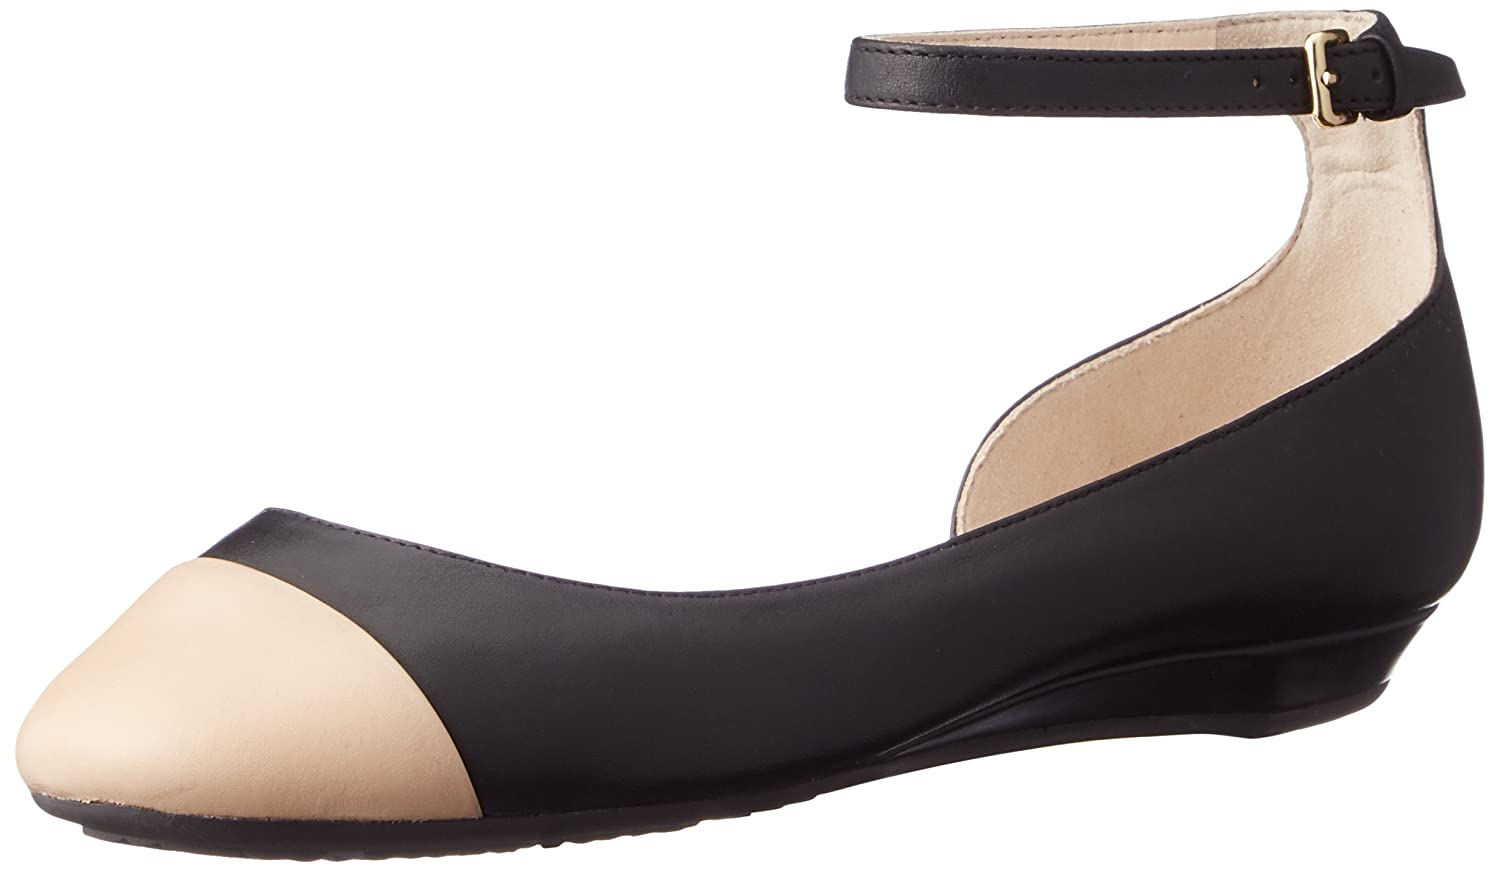 Cole Haan Women's Dixie Ballet Flat B071P26WNT 5 B(M) US|Black/Nude Leather